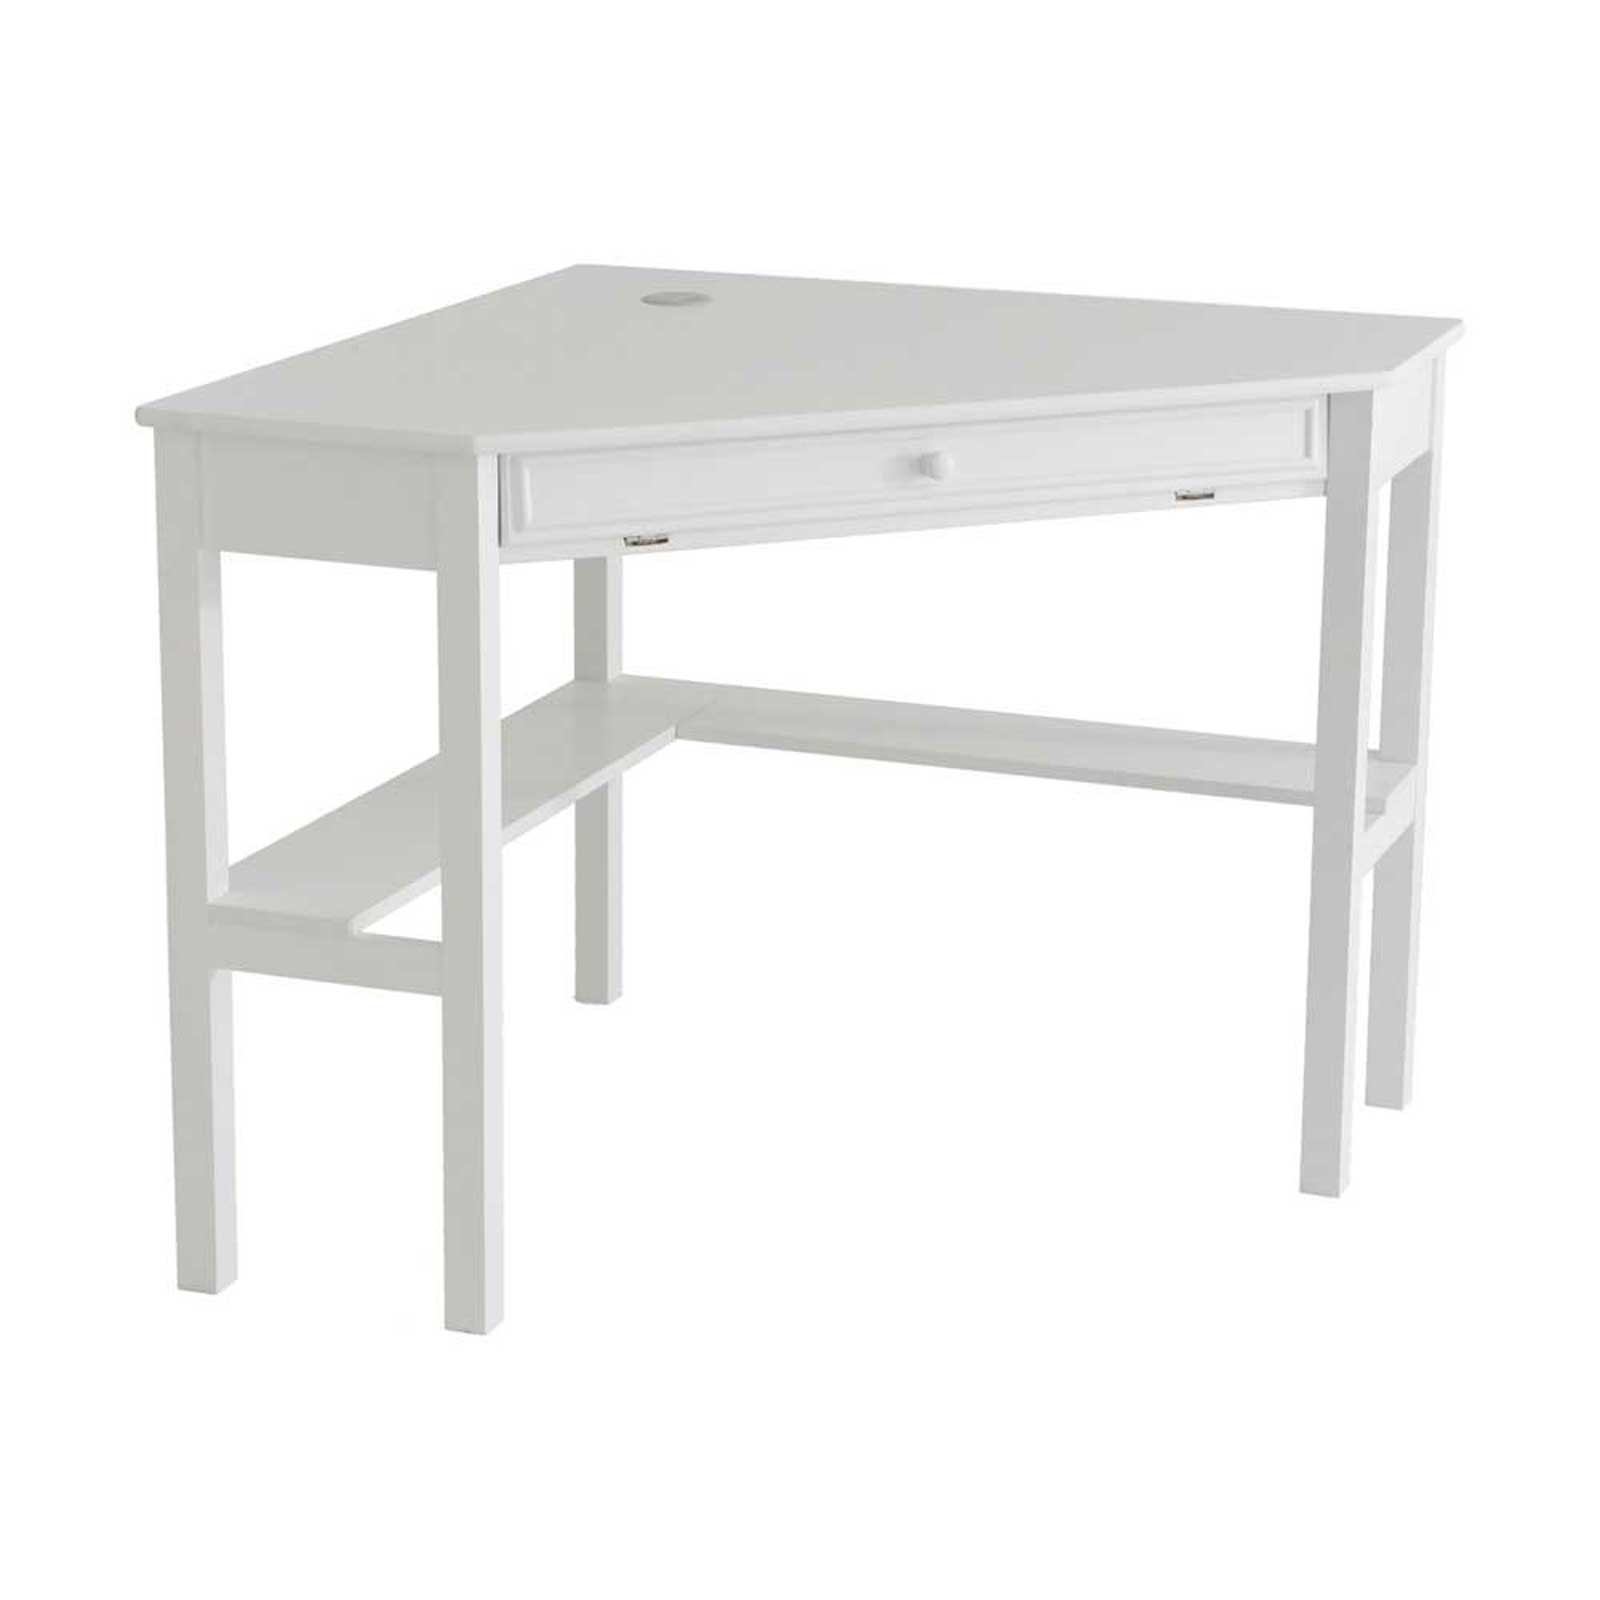 Lovely Maximize Your Home Office Space With This Hardworking Corner Desk